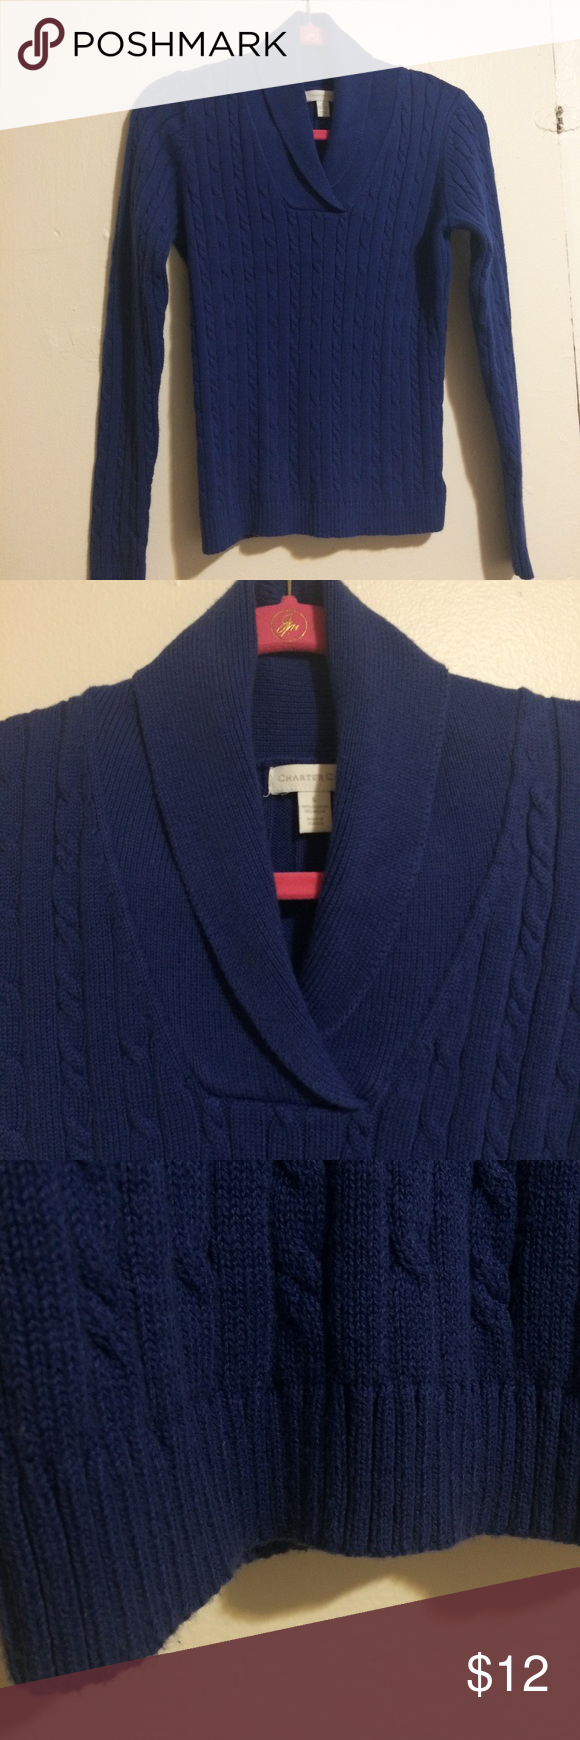 Royal blue cable knit pullover sweater